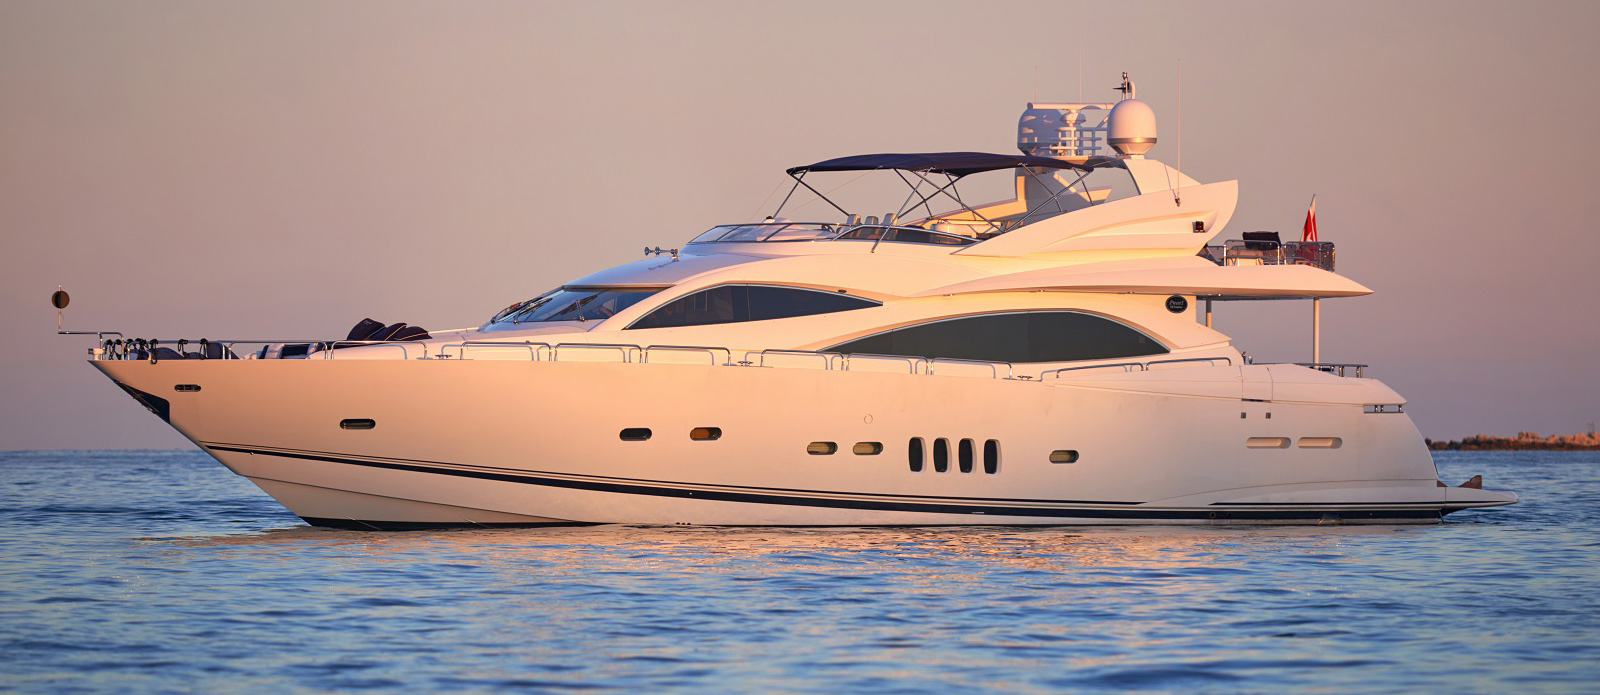 Sunseeker 94 Yacht - Pearl of London